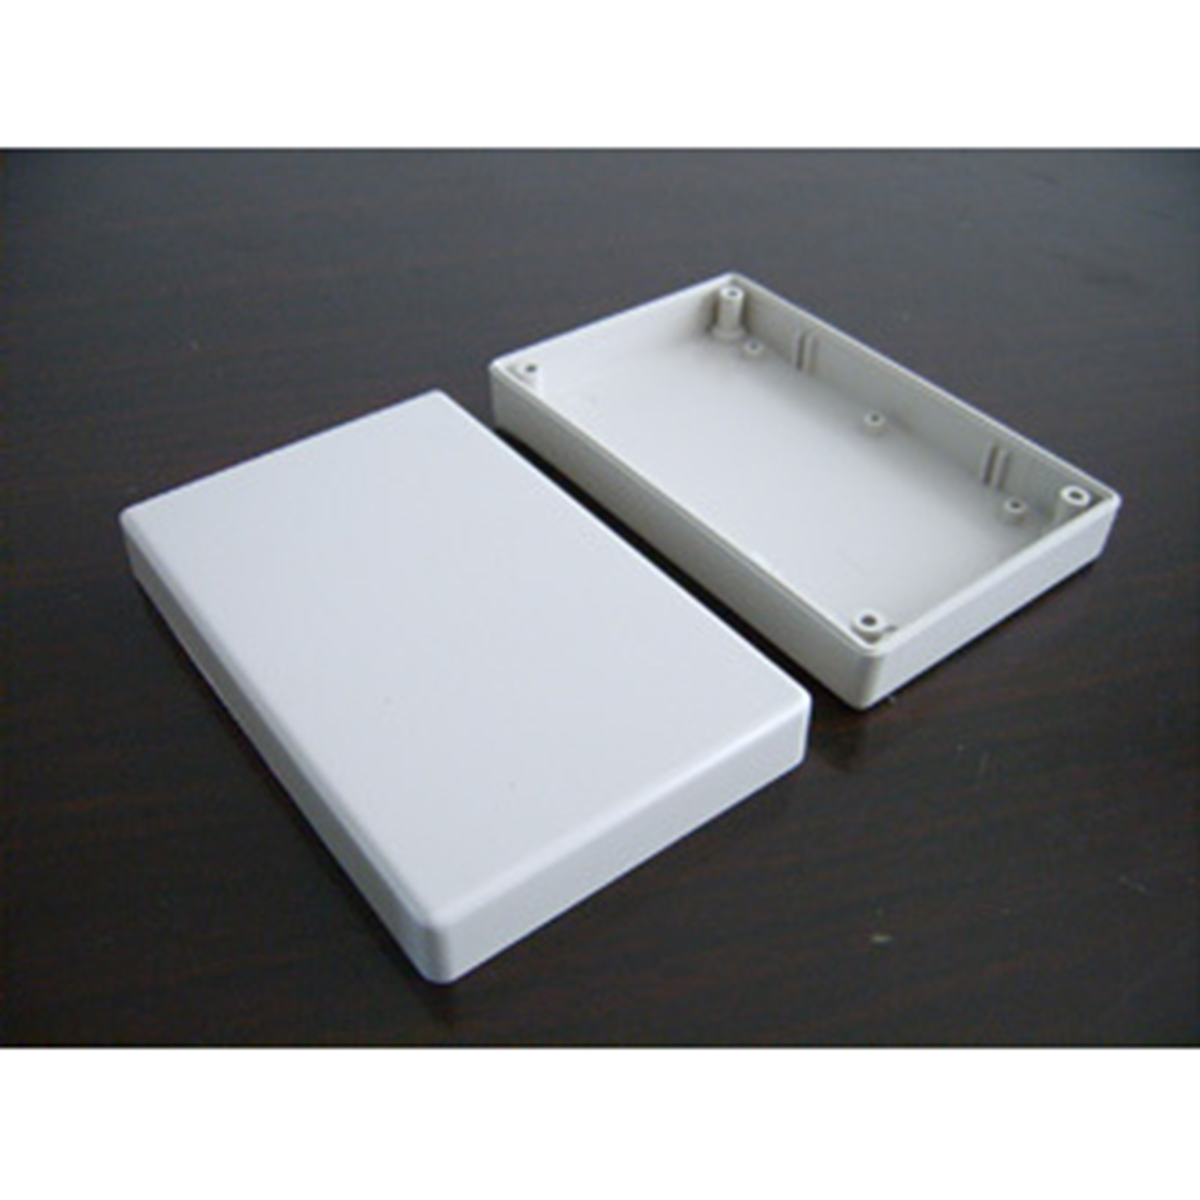 1pc Waterproof Enclosure Box Plastic Cover Project Electronic Case 125*80*32mm with Anti-corrosion 4pcs a lot diy plastic enclosure for electronic handheld led junction box abs housing control box waterproof case 238 134 50mm